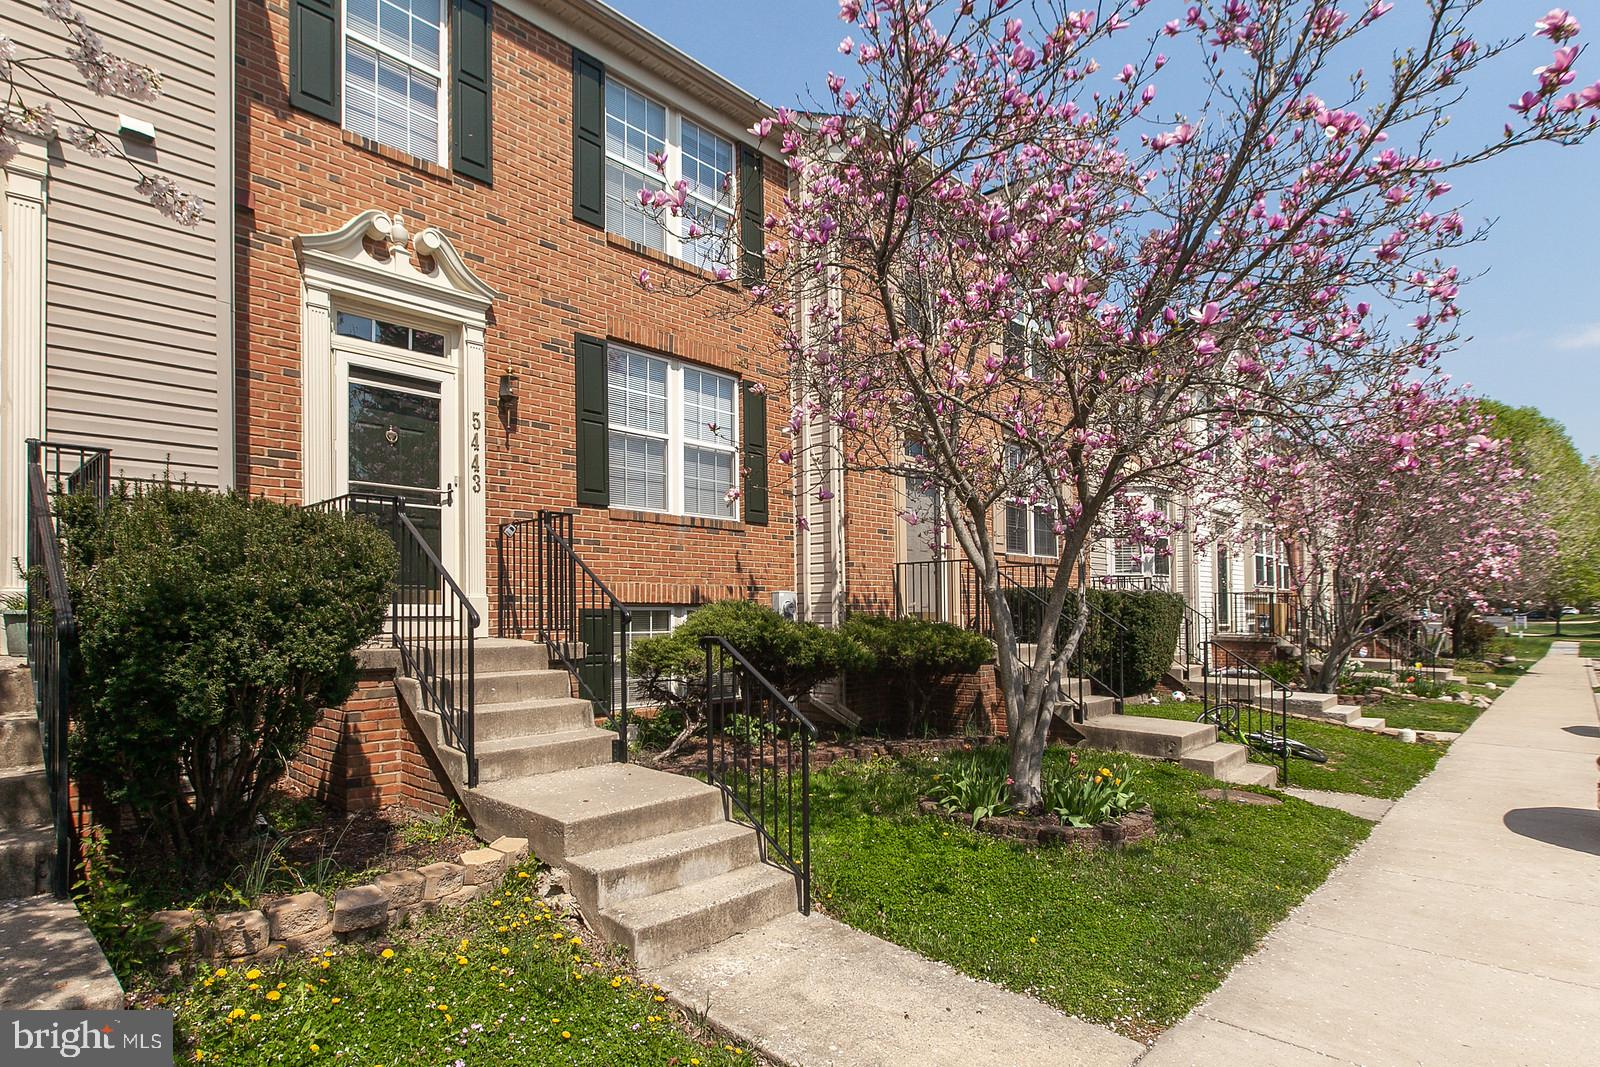 Great opportunity to purchase a sought-after, brick-front townhome in Ballenger Creek.  The main lev